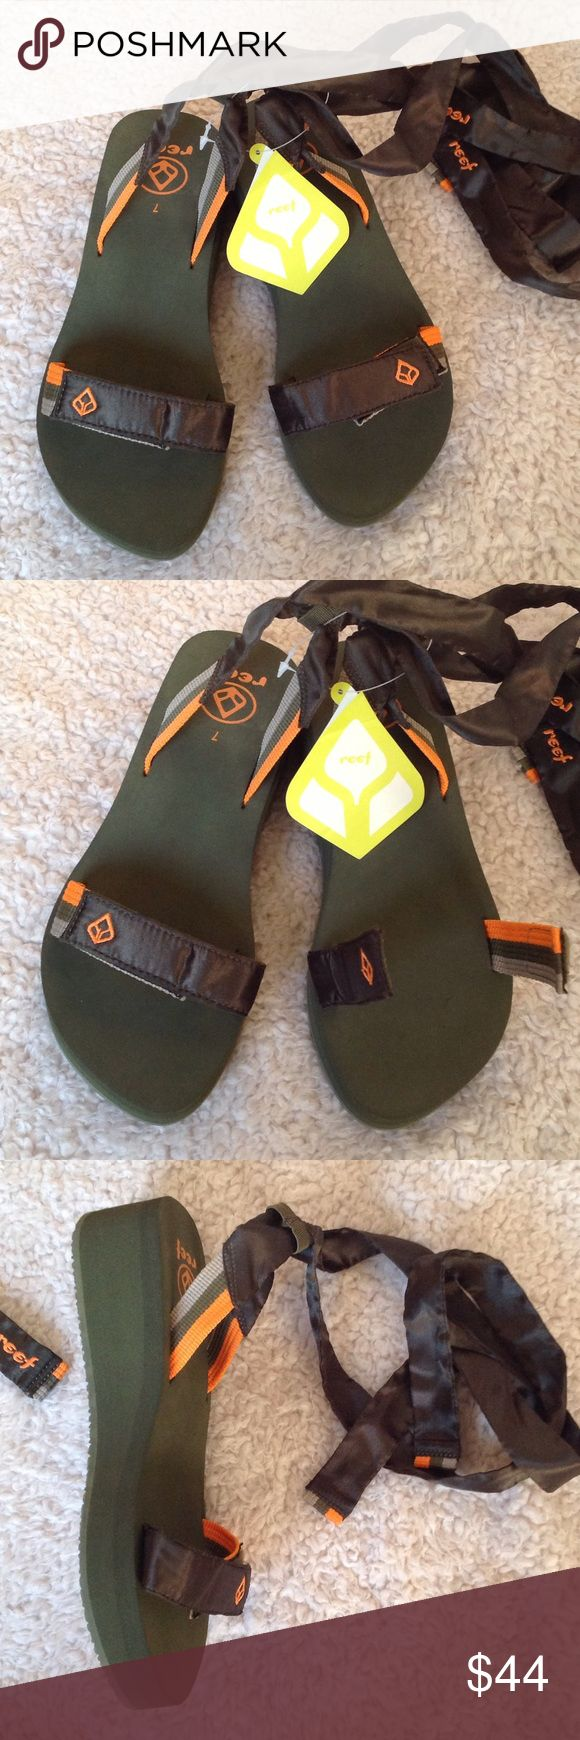 New REEF wrap up sandals green 7.5 wedge heels New with tags REEF wedge heel sandals color olive green the tags says size US 7 EUR 37/38 I wear 7.5 and they fit perfect the toe straps are adjustable the heel is 1 3/4 inches high... ask any questions offers are never ignored Reef Shoes Sandals